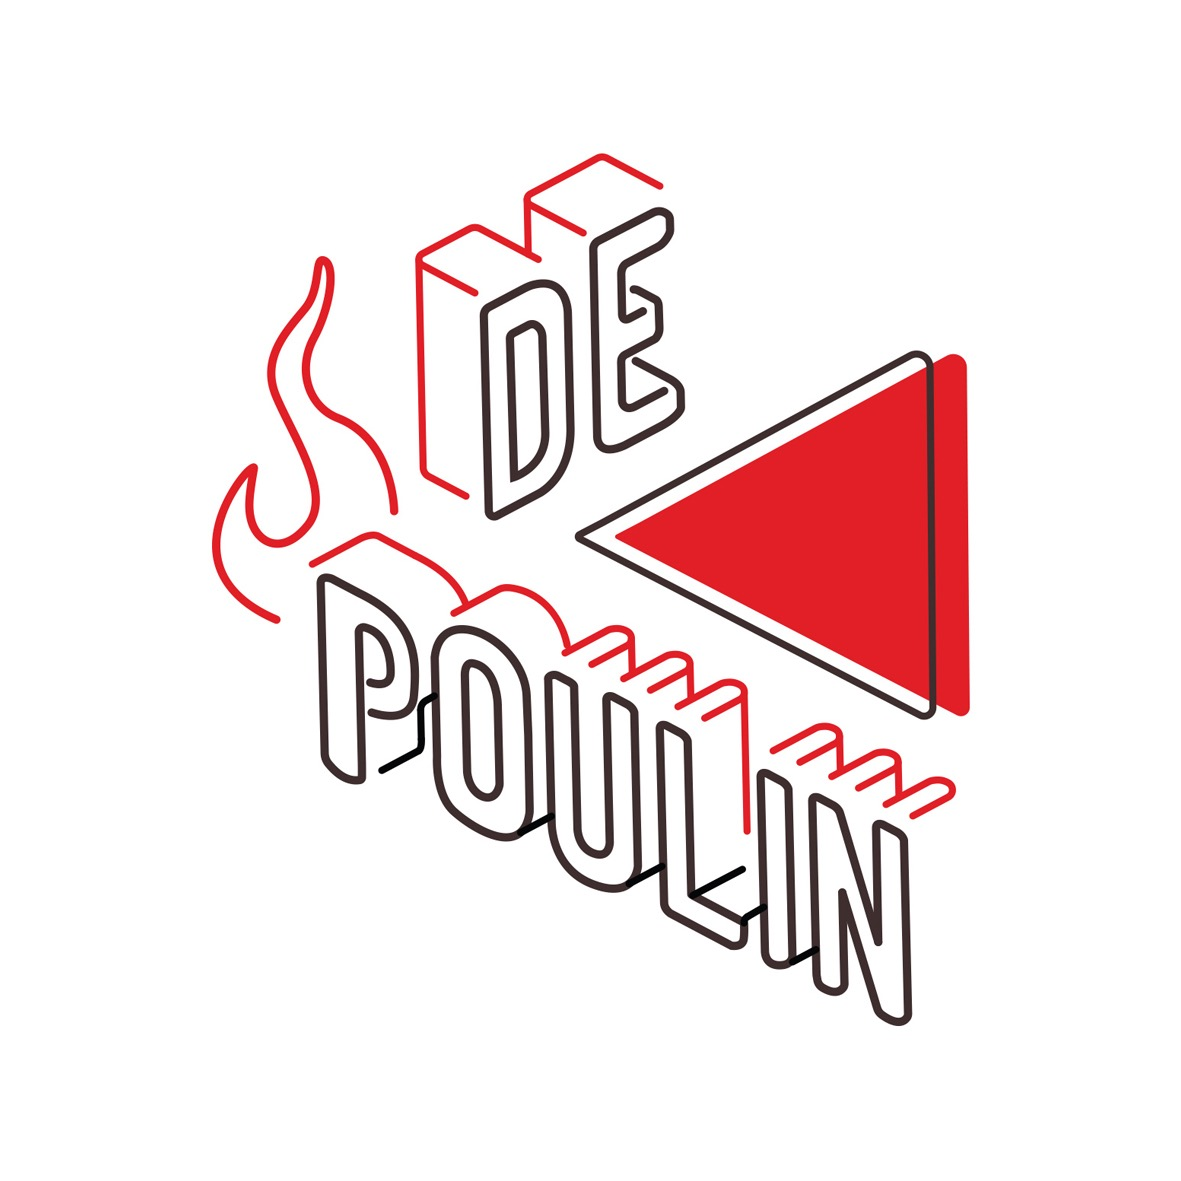 DePoulin-Logo_edited